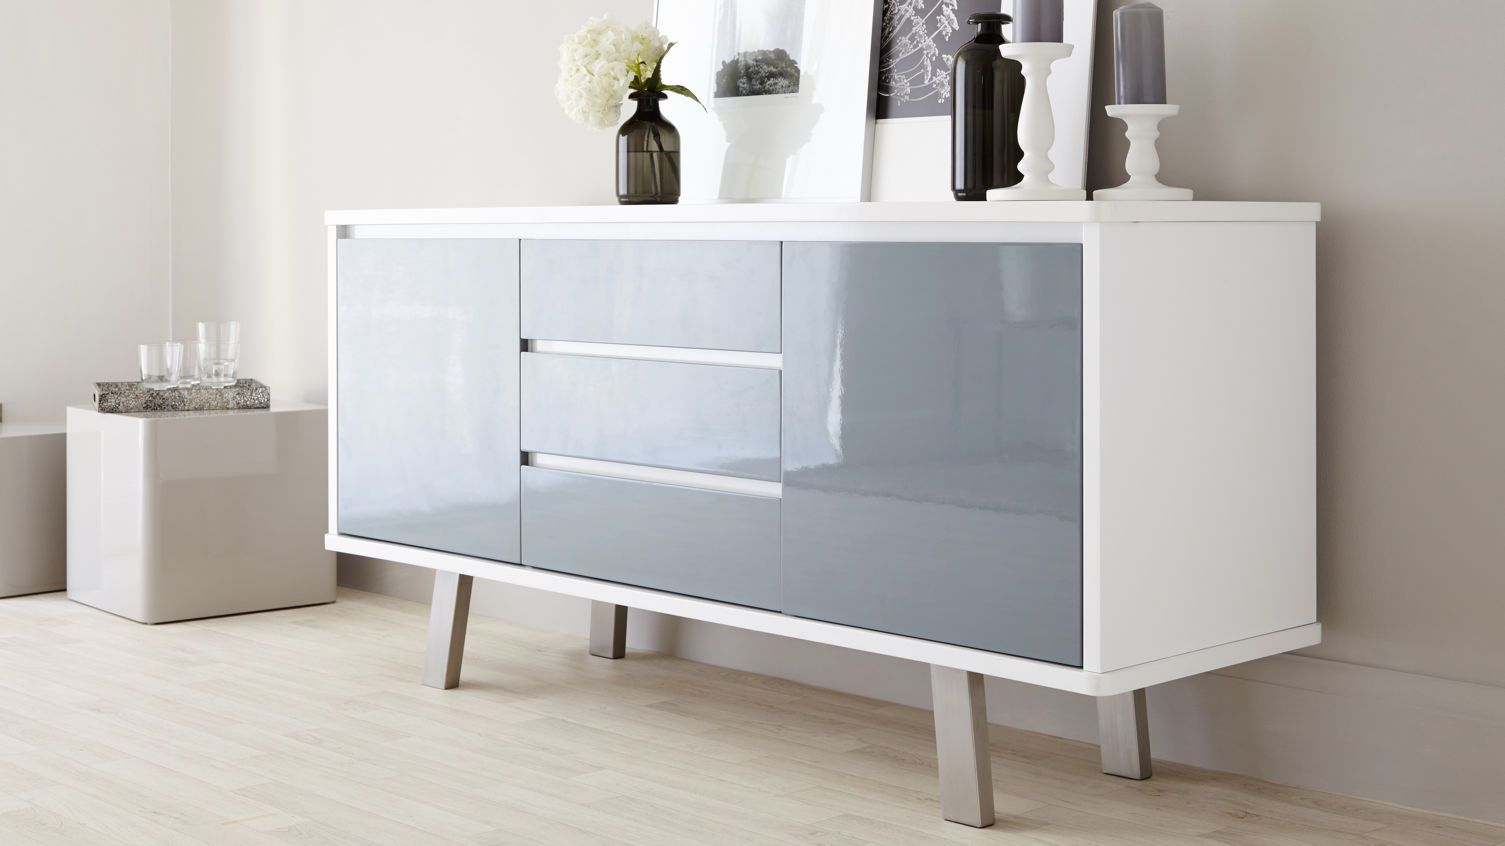 Assi White And Grey Gloss Sideboard | Danetti | Stylish In Most Recently Released Thite Sideboards (View 1 of 20)